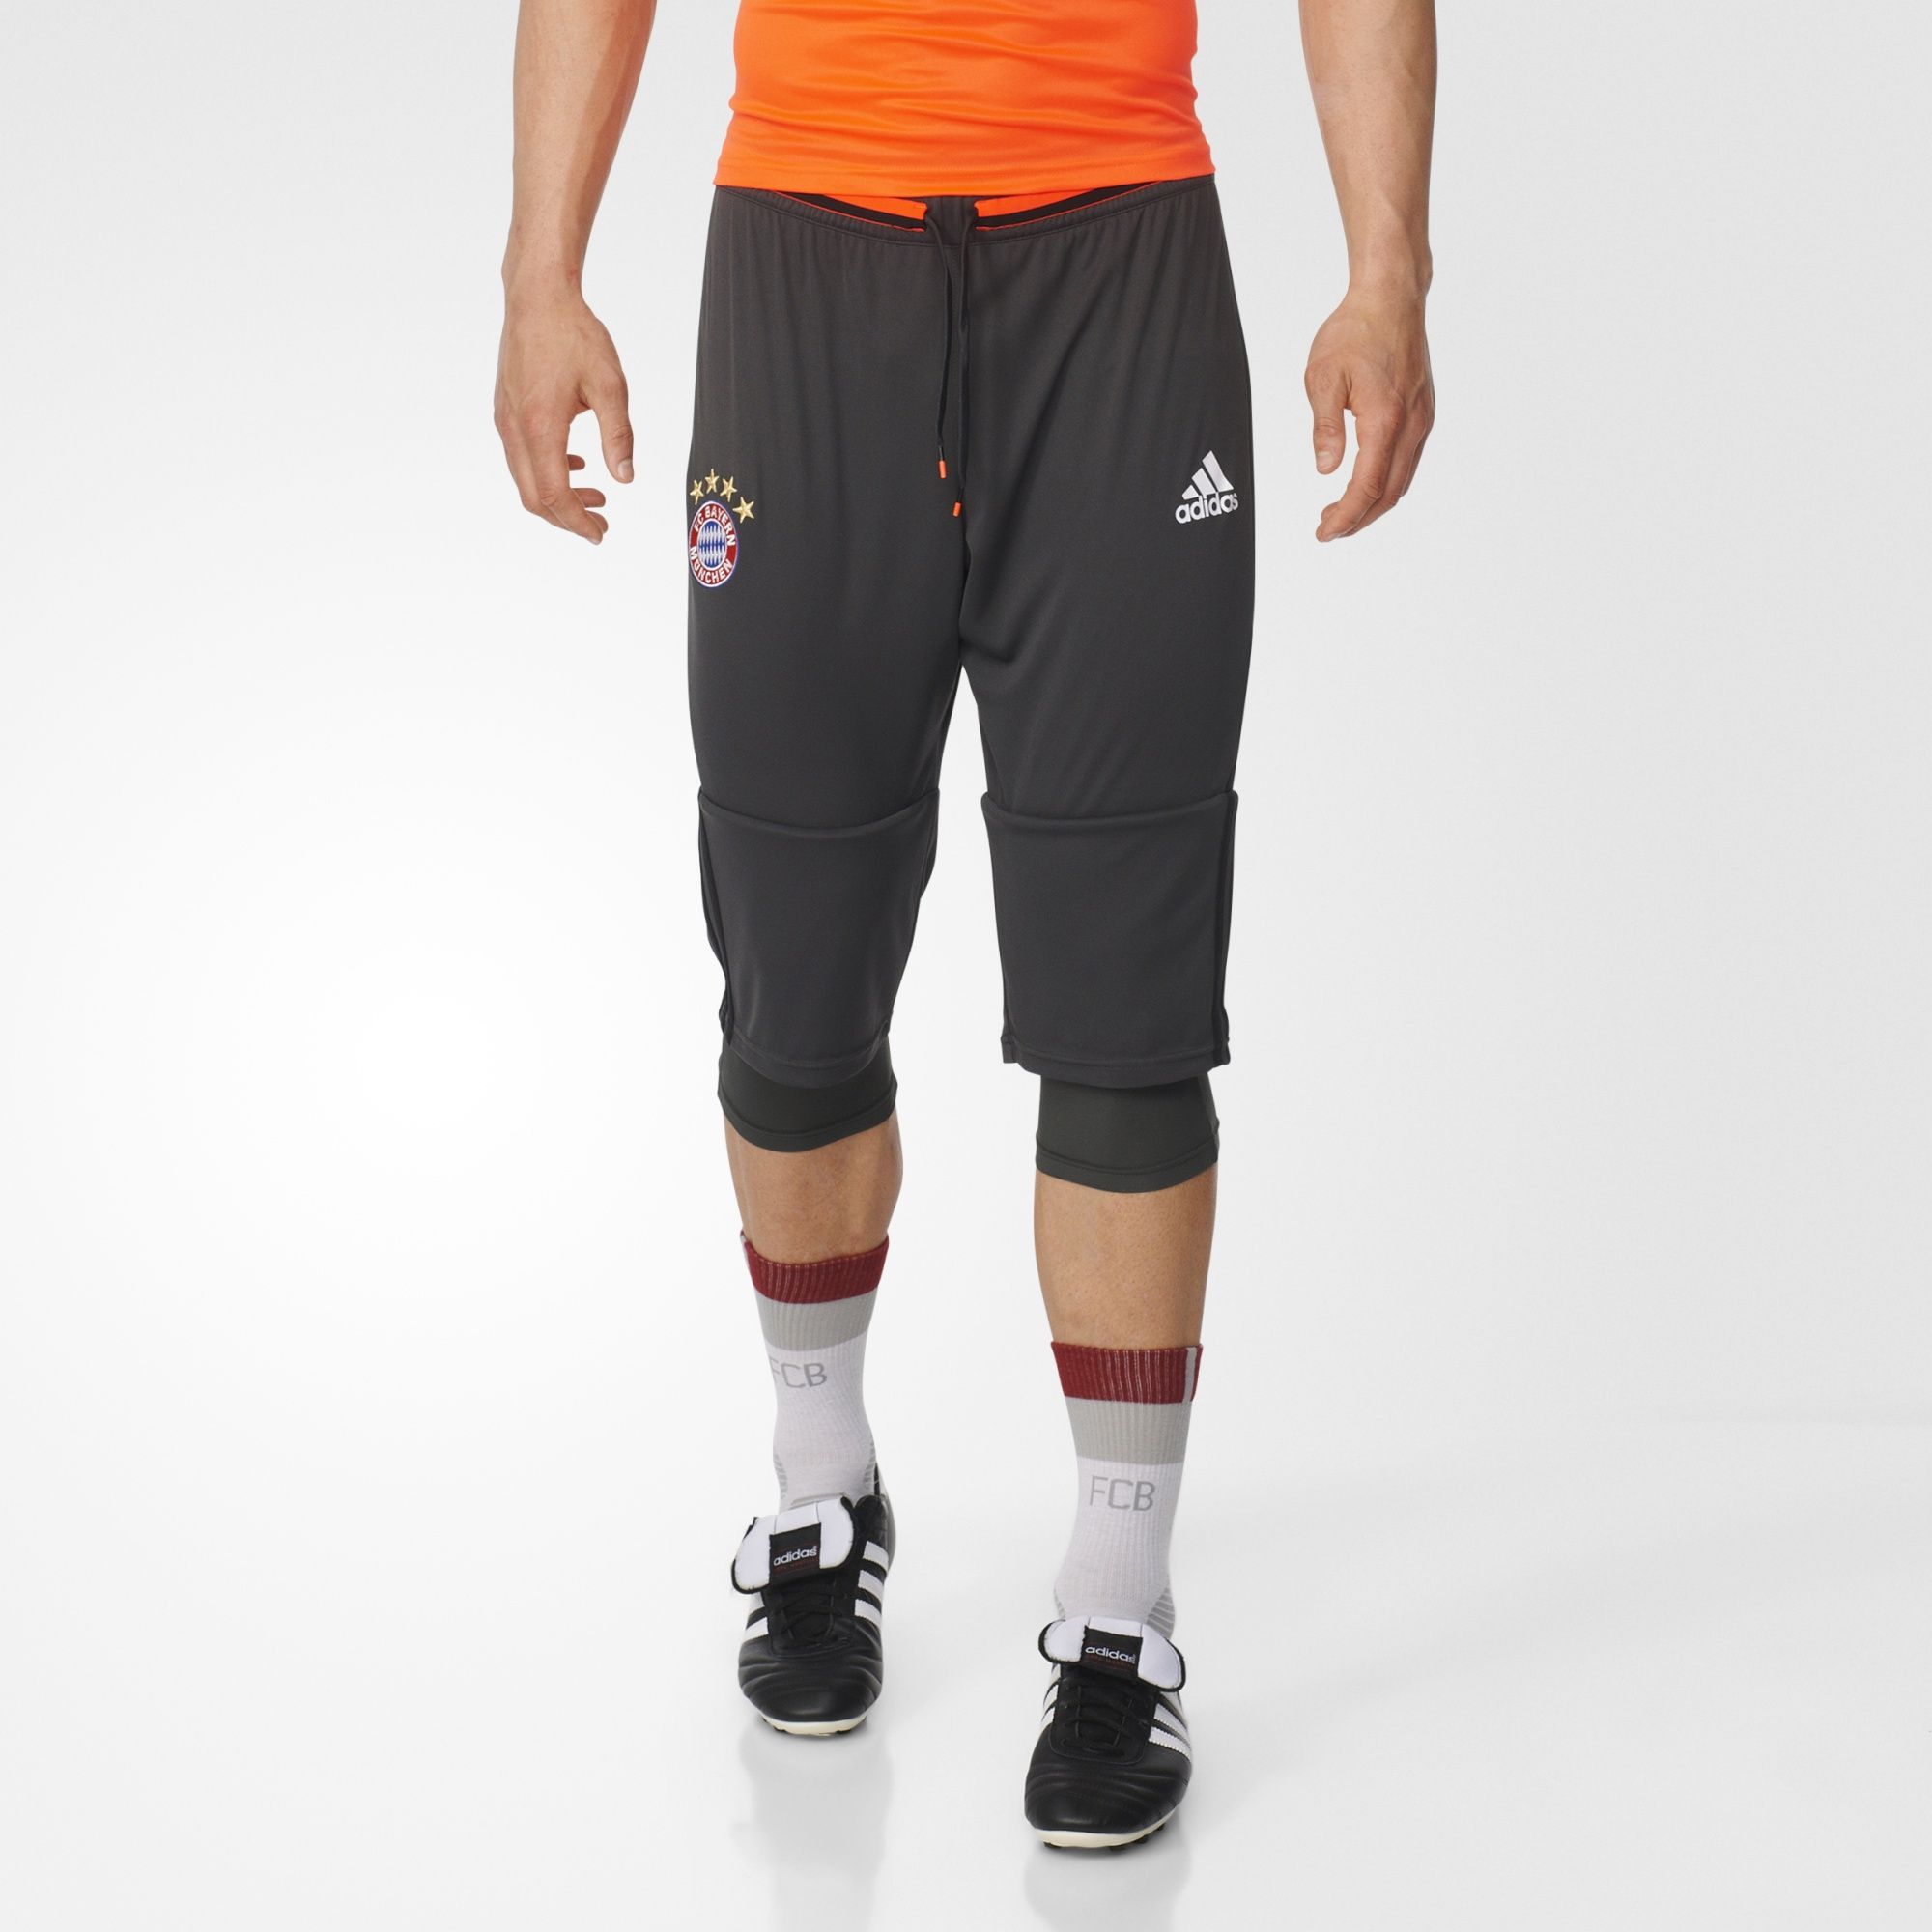 Spread out the defense and put one in the back of the net like der FCB does with these men's three-quarter soccer pants. They feature a two-piece construction with inner tights and an embroidered FC Bayern team badge on the right leg.